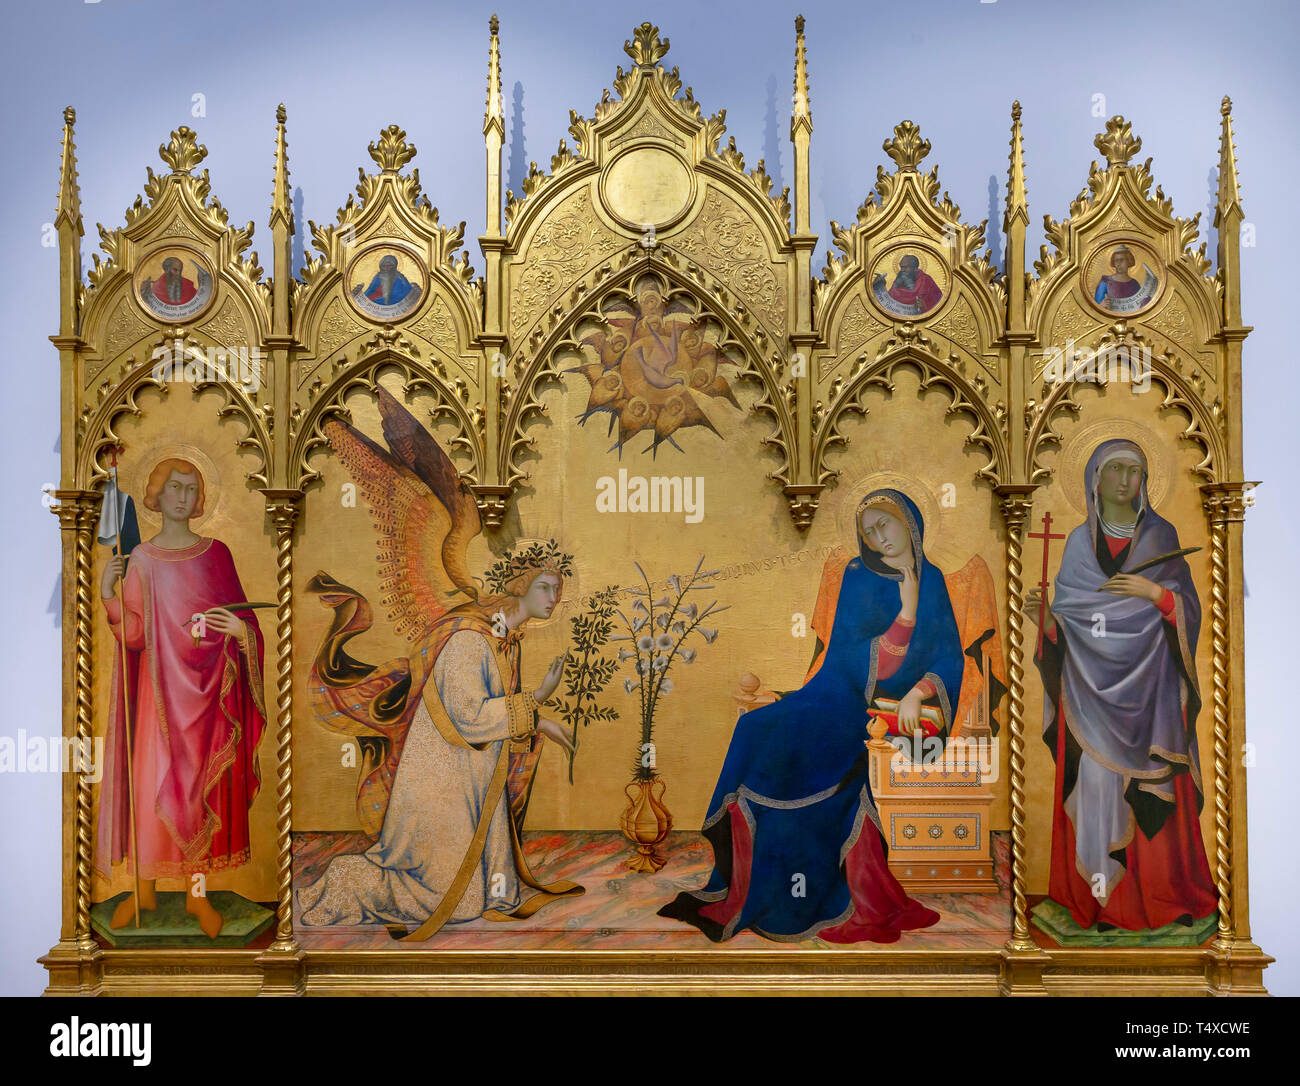 Annunciation with St Ansanus and St. Maxima, The Prophets Jeremiah, Ezekiel, Isaiah and Daniel, Simone Martini and Lippo Memmi, 1333, Galleria degli U - Stock Image